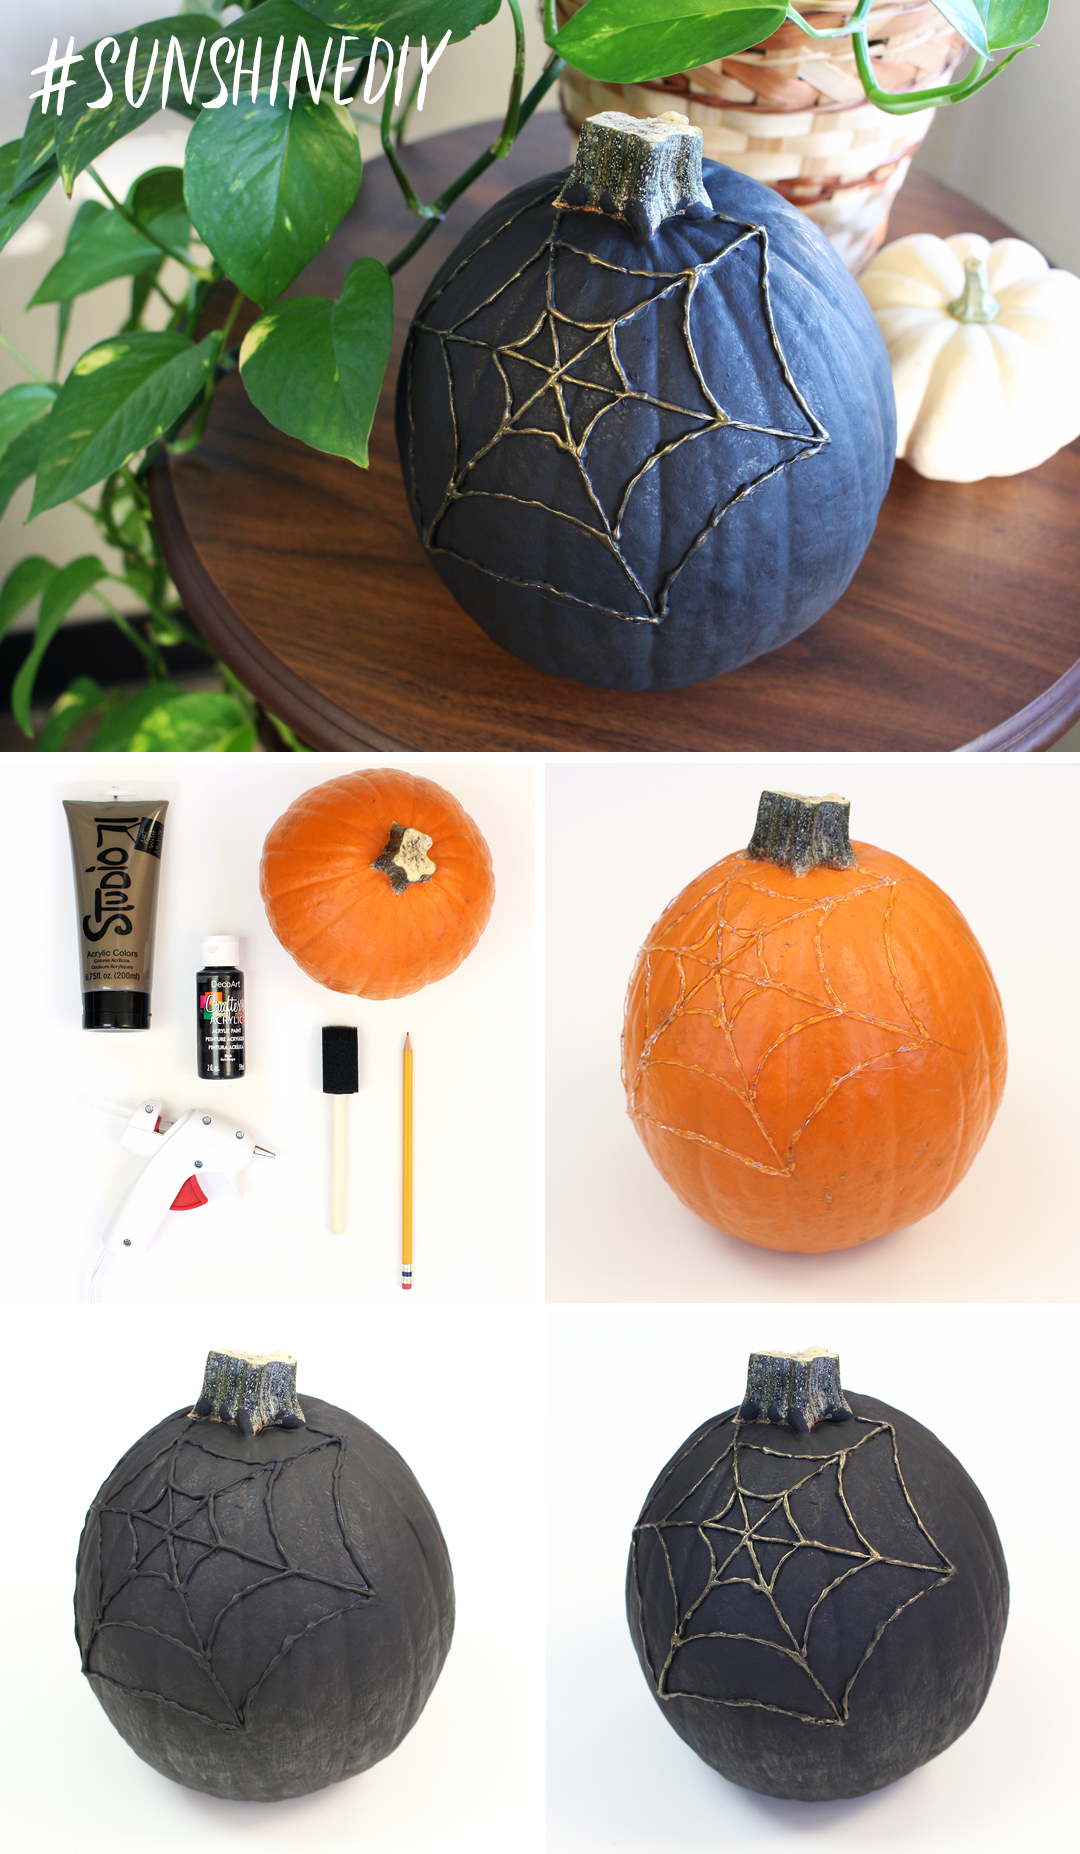 Spider-Web-Pumpkin-DIY-8.jpg